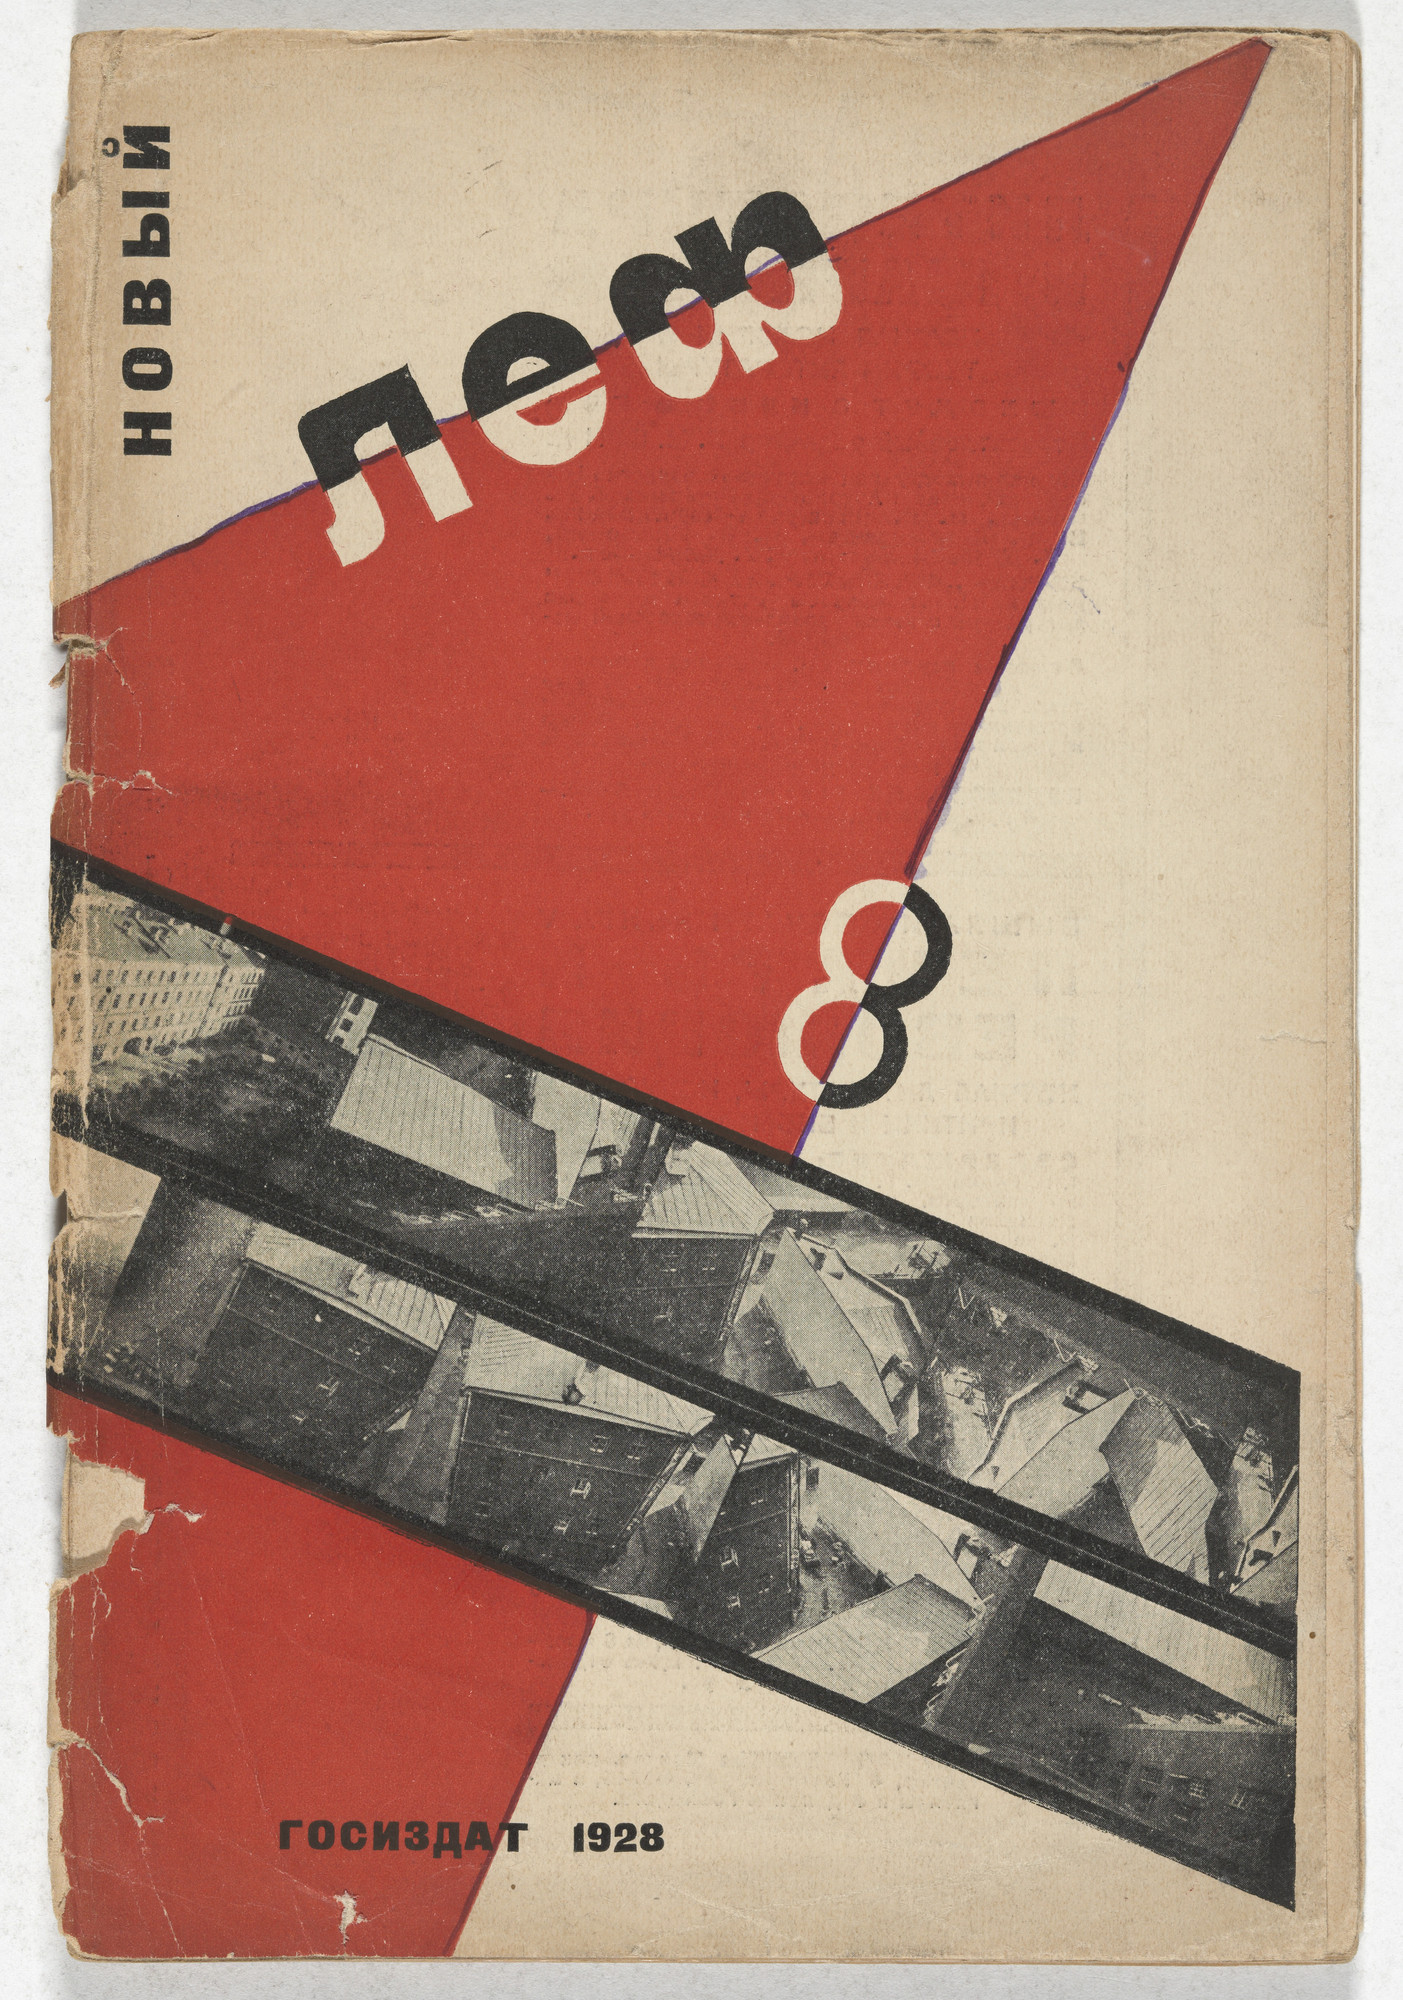 Aleksandr Rodchenko. Novyi LEF. Zhurnal levogo fronta iskusstv (New LEF: Journal of the Left Front of the Arts), no. 8. 1928